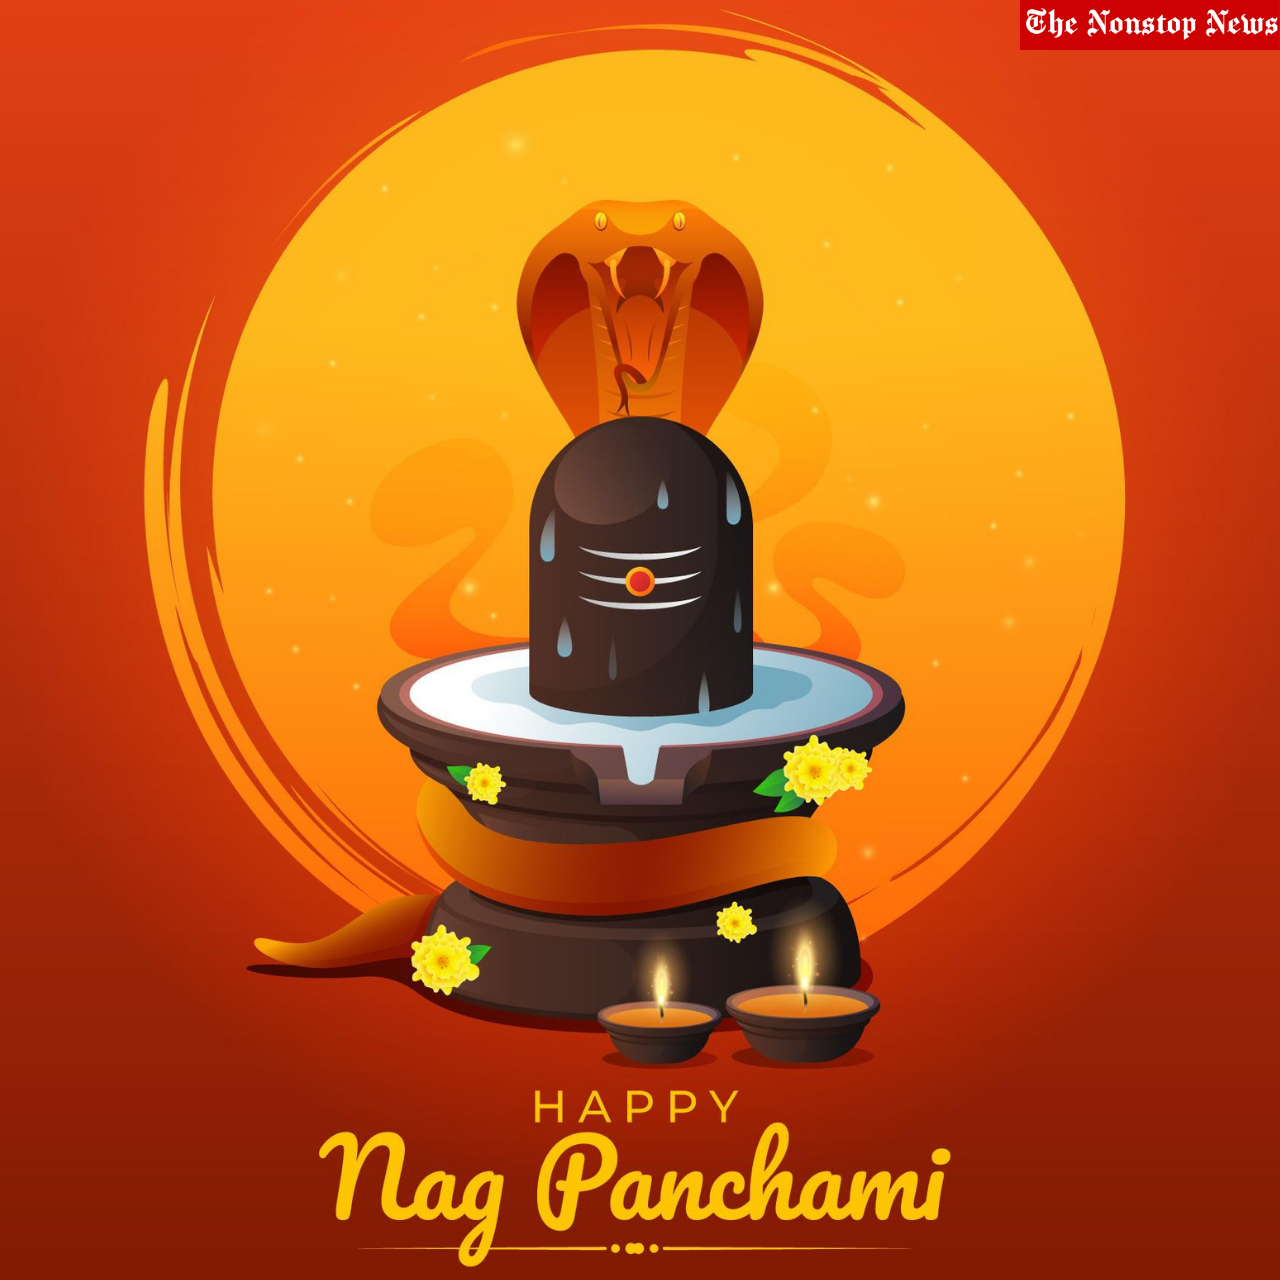 Happy Nag Panchami 2021 WhatsApp Status Video to Download to greet your Loved Ones